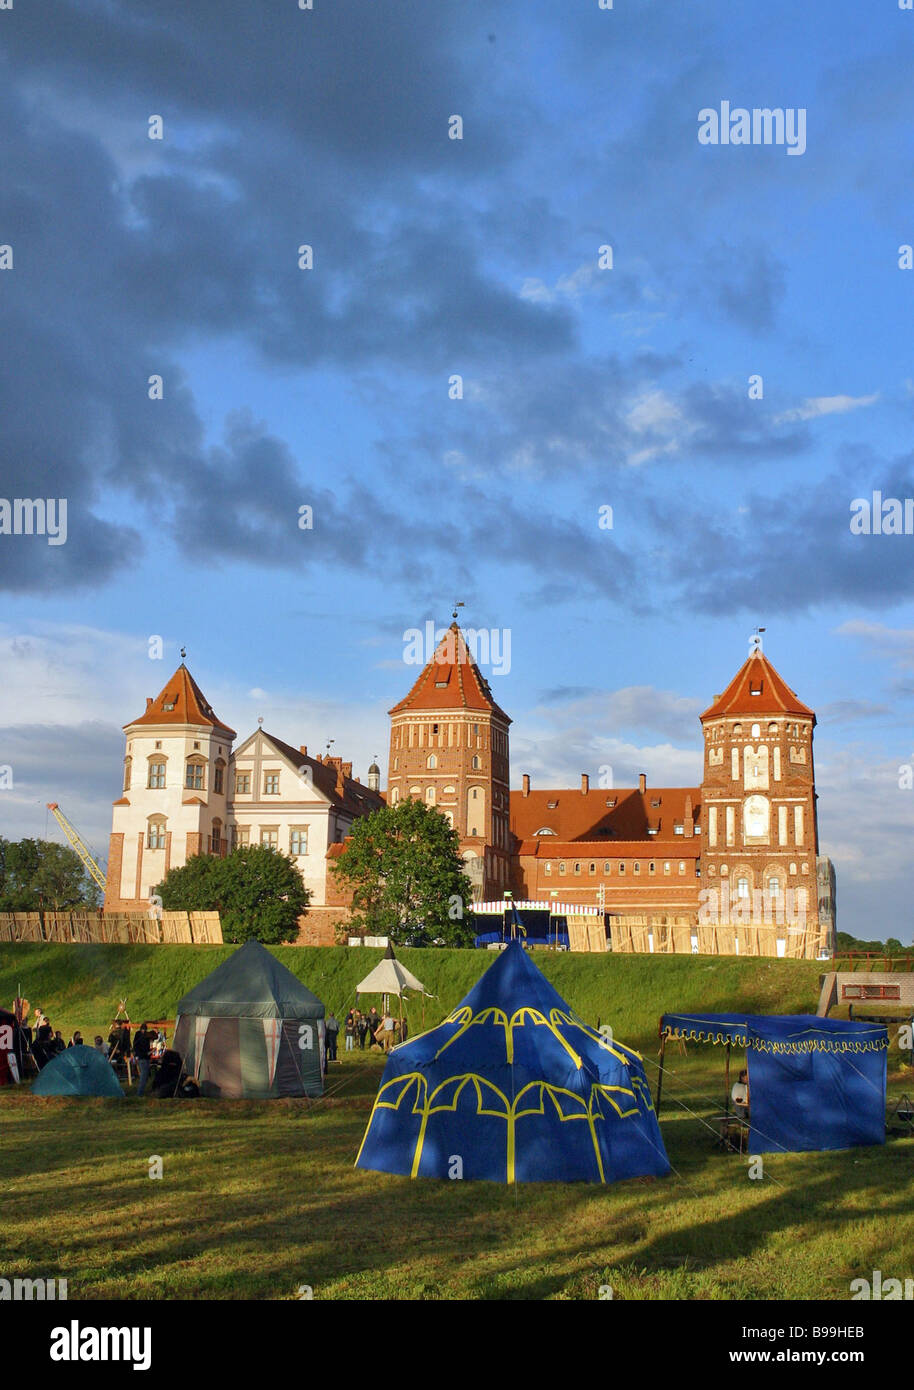 Minsk chivalry clubs hold a gathering in front of the Mirsky Castle Mir Grodno Region Belarus The castle was built - Stock Image